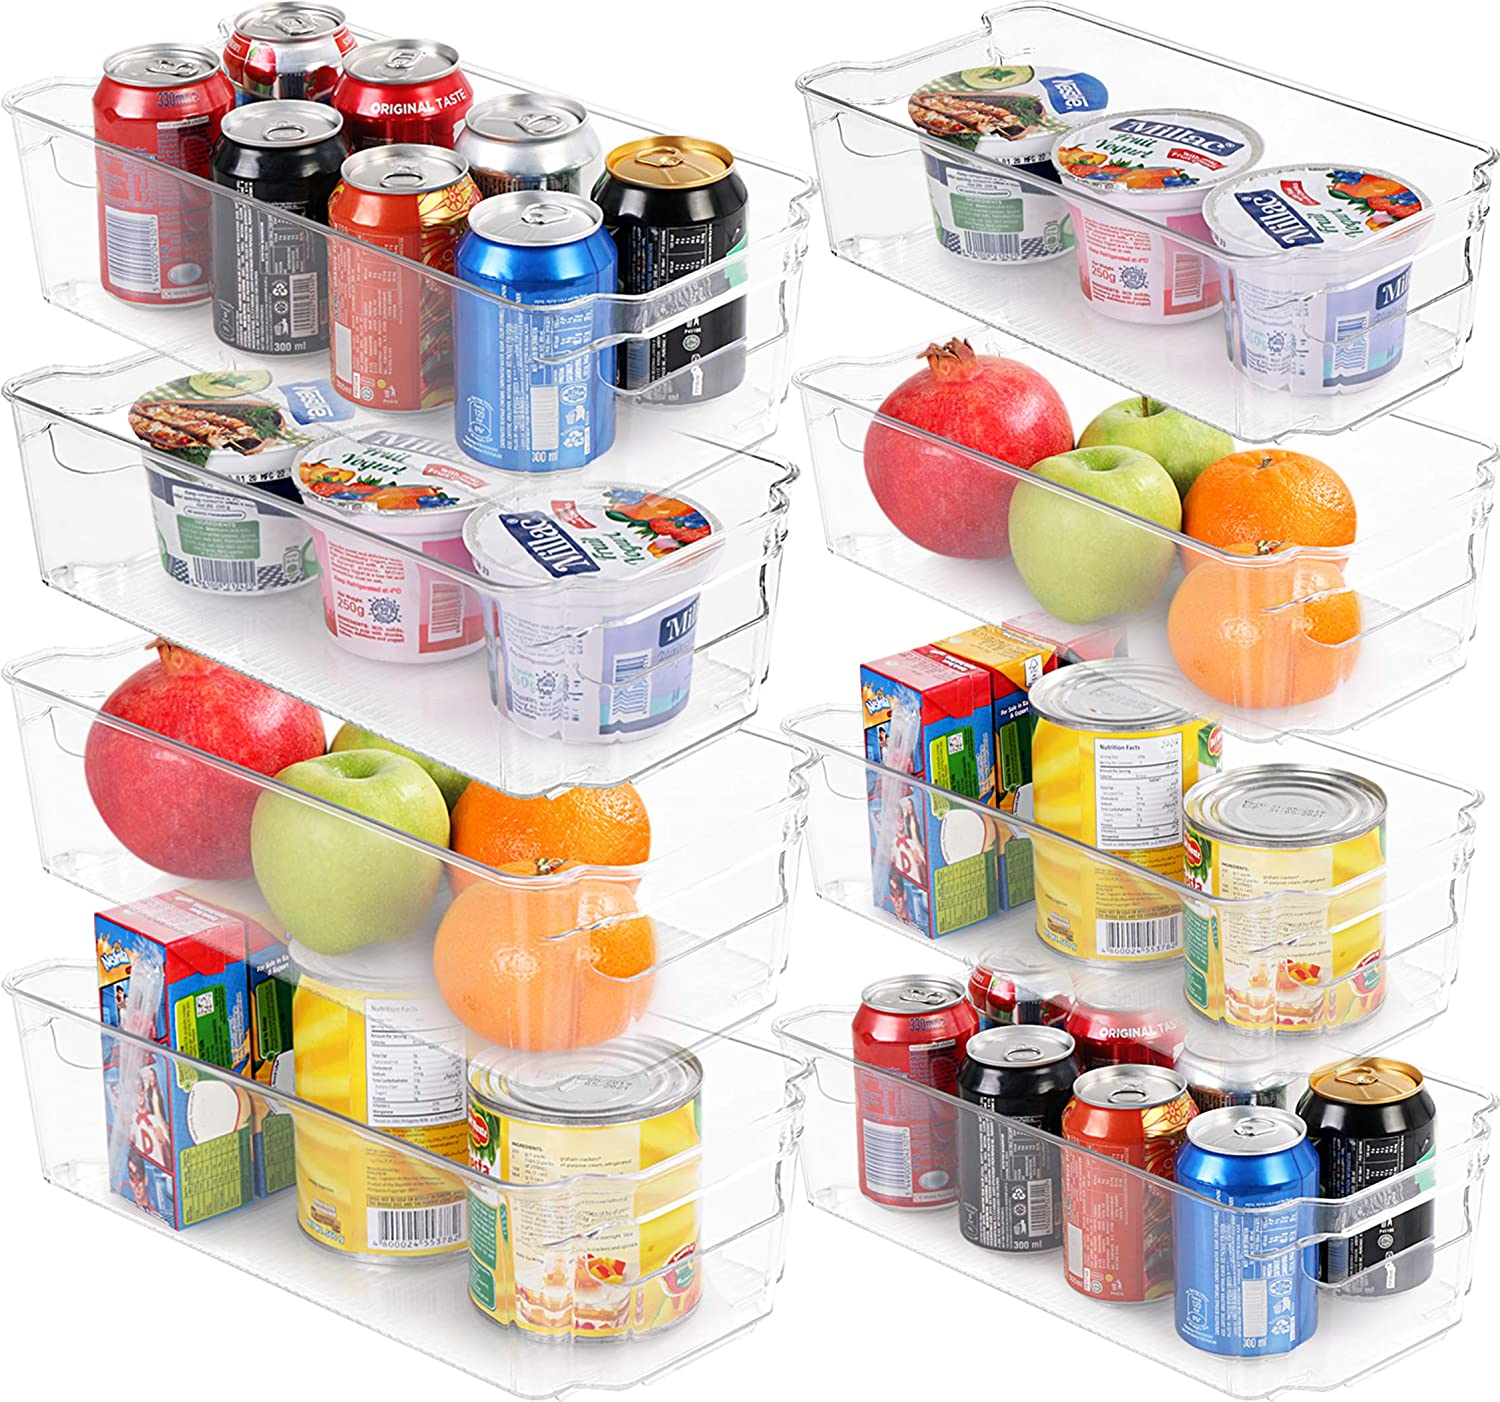 Utopia Home Set of 8 Pantry Organizers-Includes 8 Organizers (4 Large & 4 Small Drawers)-Organizers for Freezers, Kitchen Countertops and Cabinets-Clear Plastic Pantry Storage Racks